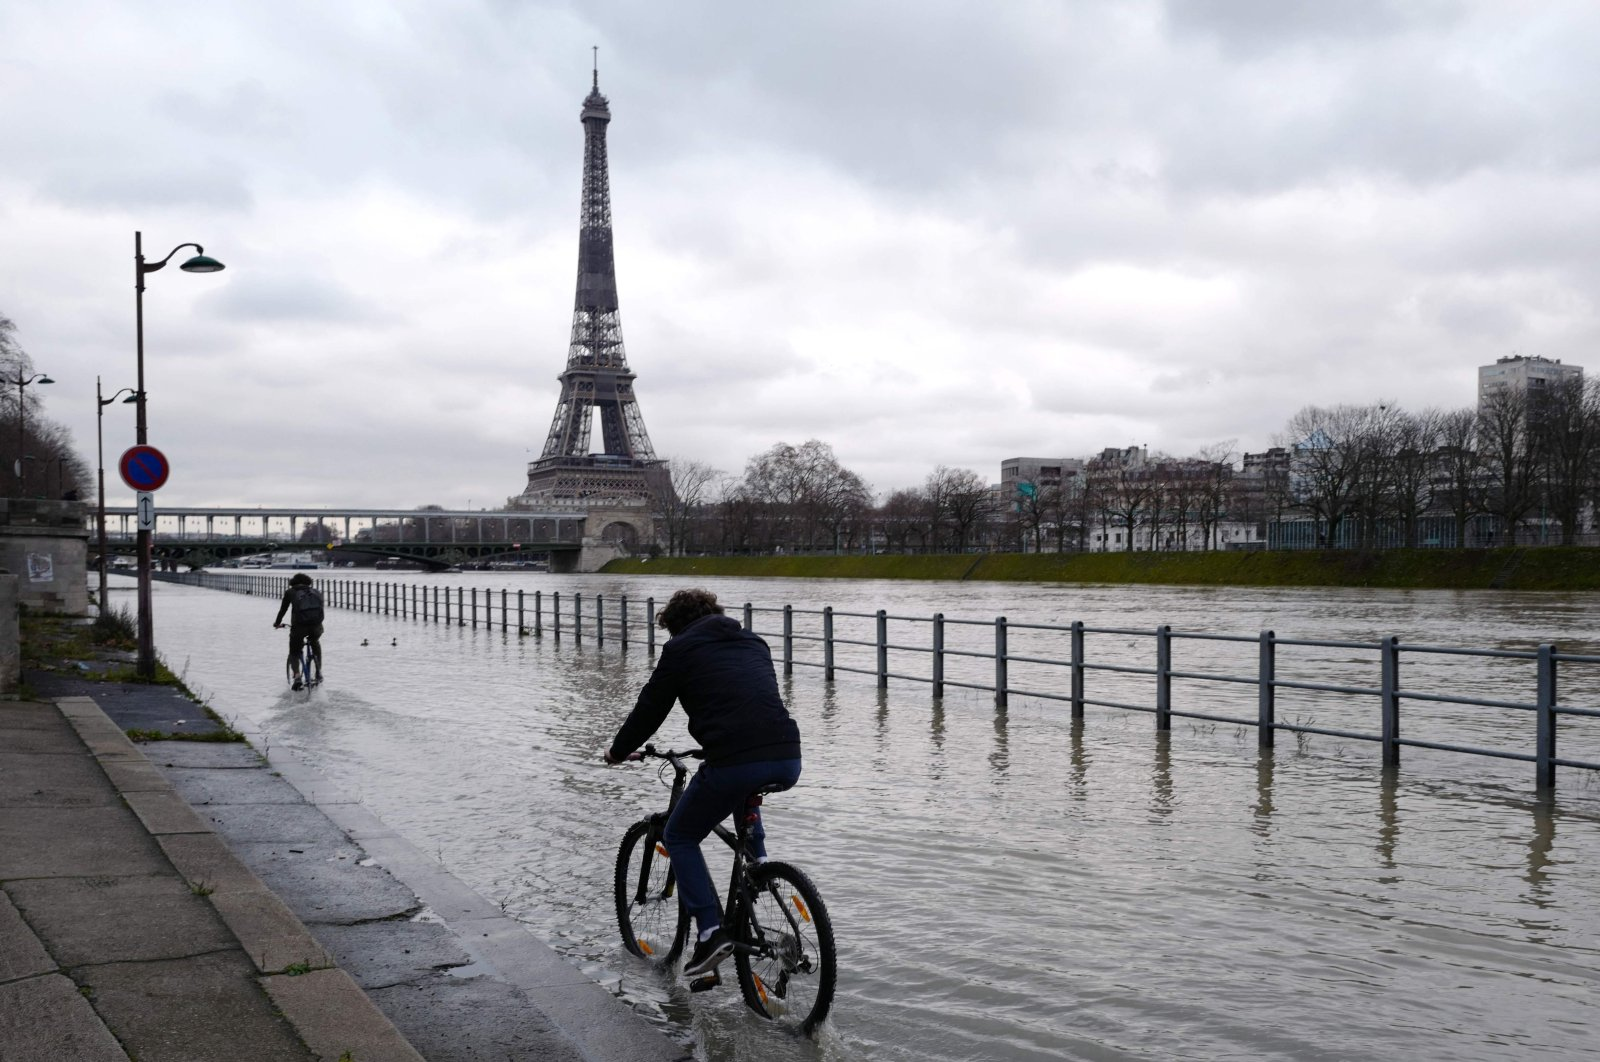 People ride bikes along the Seine river as it overflows in Paris, on Feb. 1, 2021. (AFP Photo)